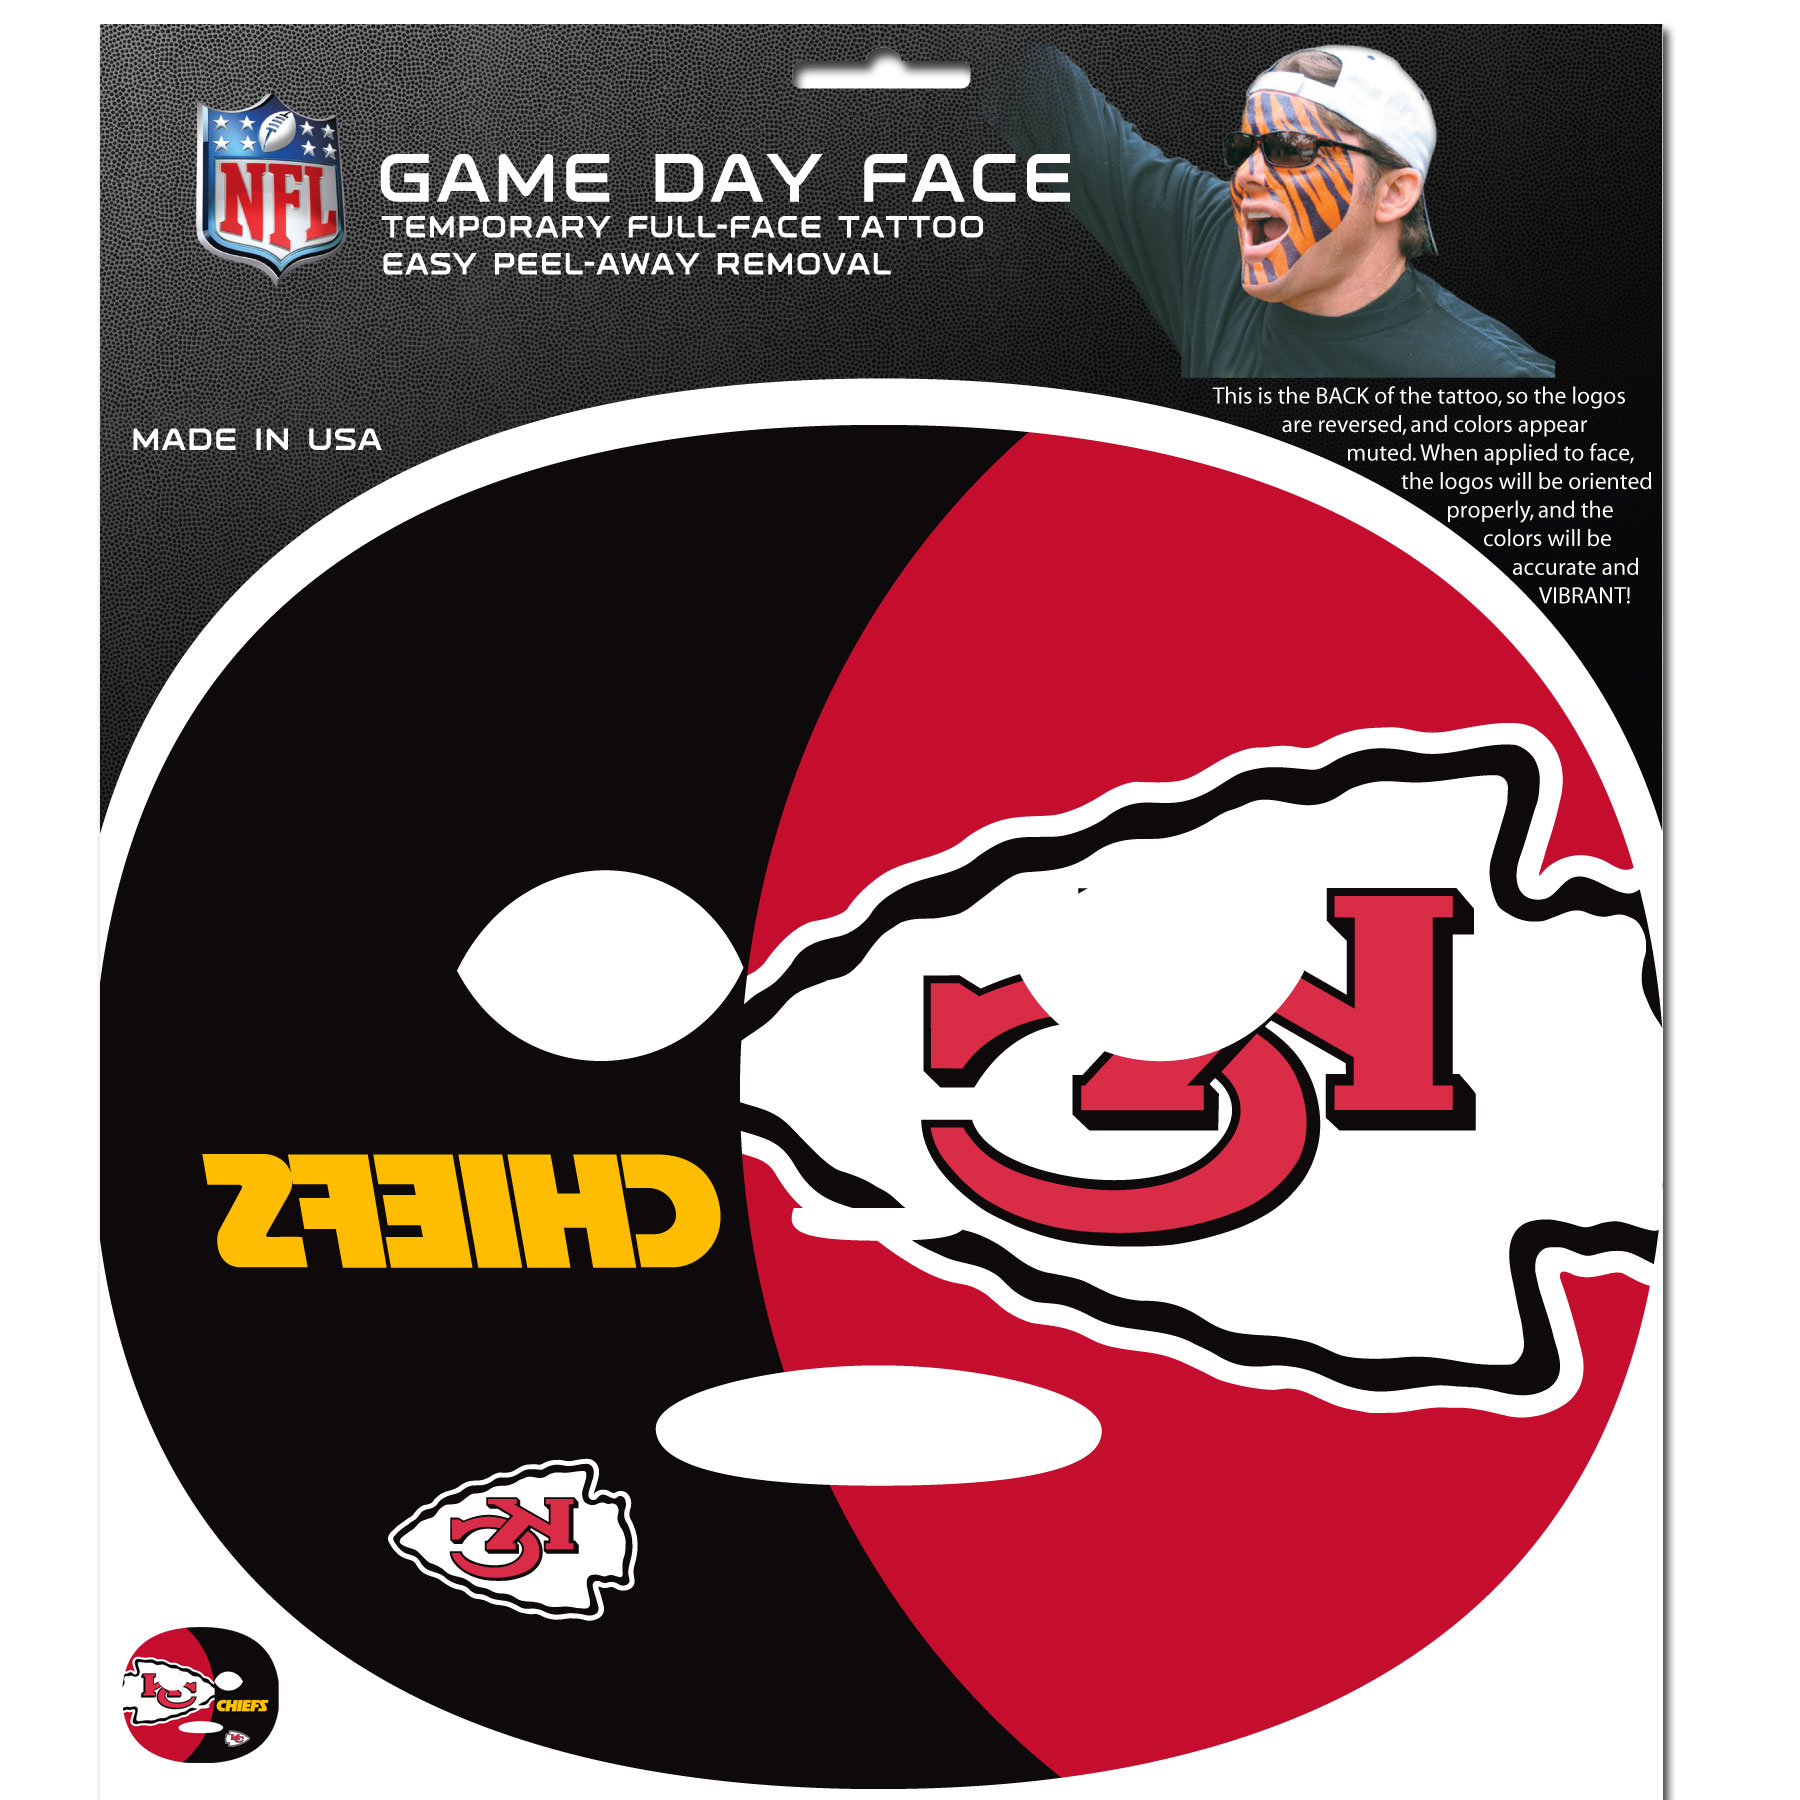 Kansas City Chiefs Game Face Temporary Tattoo - No better way to show your Kansas City Chiefs pride than by painting your face. Siskiyou's Game Day Face Temporary Tattoo isn't your typical face paint. It is a water based application that doesn't smudge, smear or sweat off  while you're wearing it and easily peels off after you're done celebrating your team's big Win! The temporary tattoo is large enough to trim down to fit your face.  Our Game Day Face Temporary Tattoo's are fun for fans of all ages. You may have seen our product before,  these are the same Temporary Face Tattoos as pitched on ABC's Shark Tank.